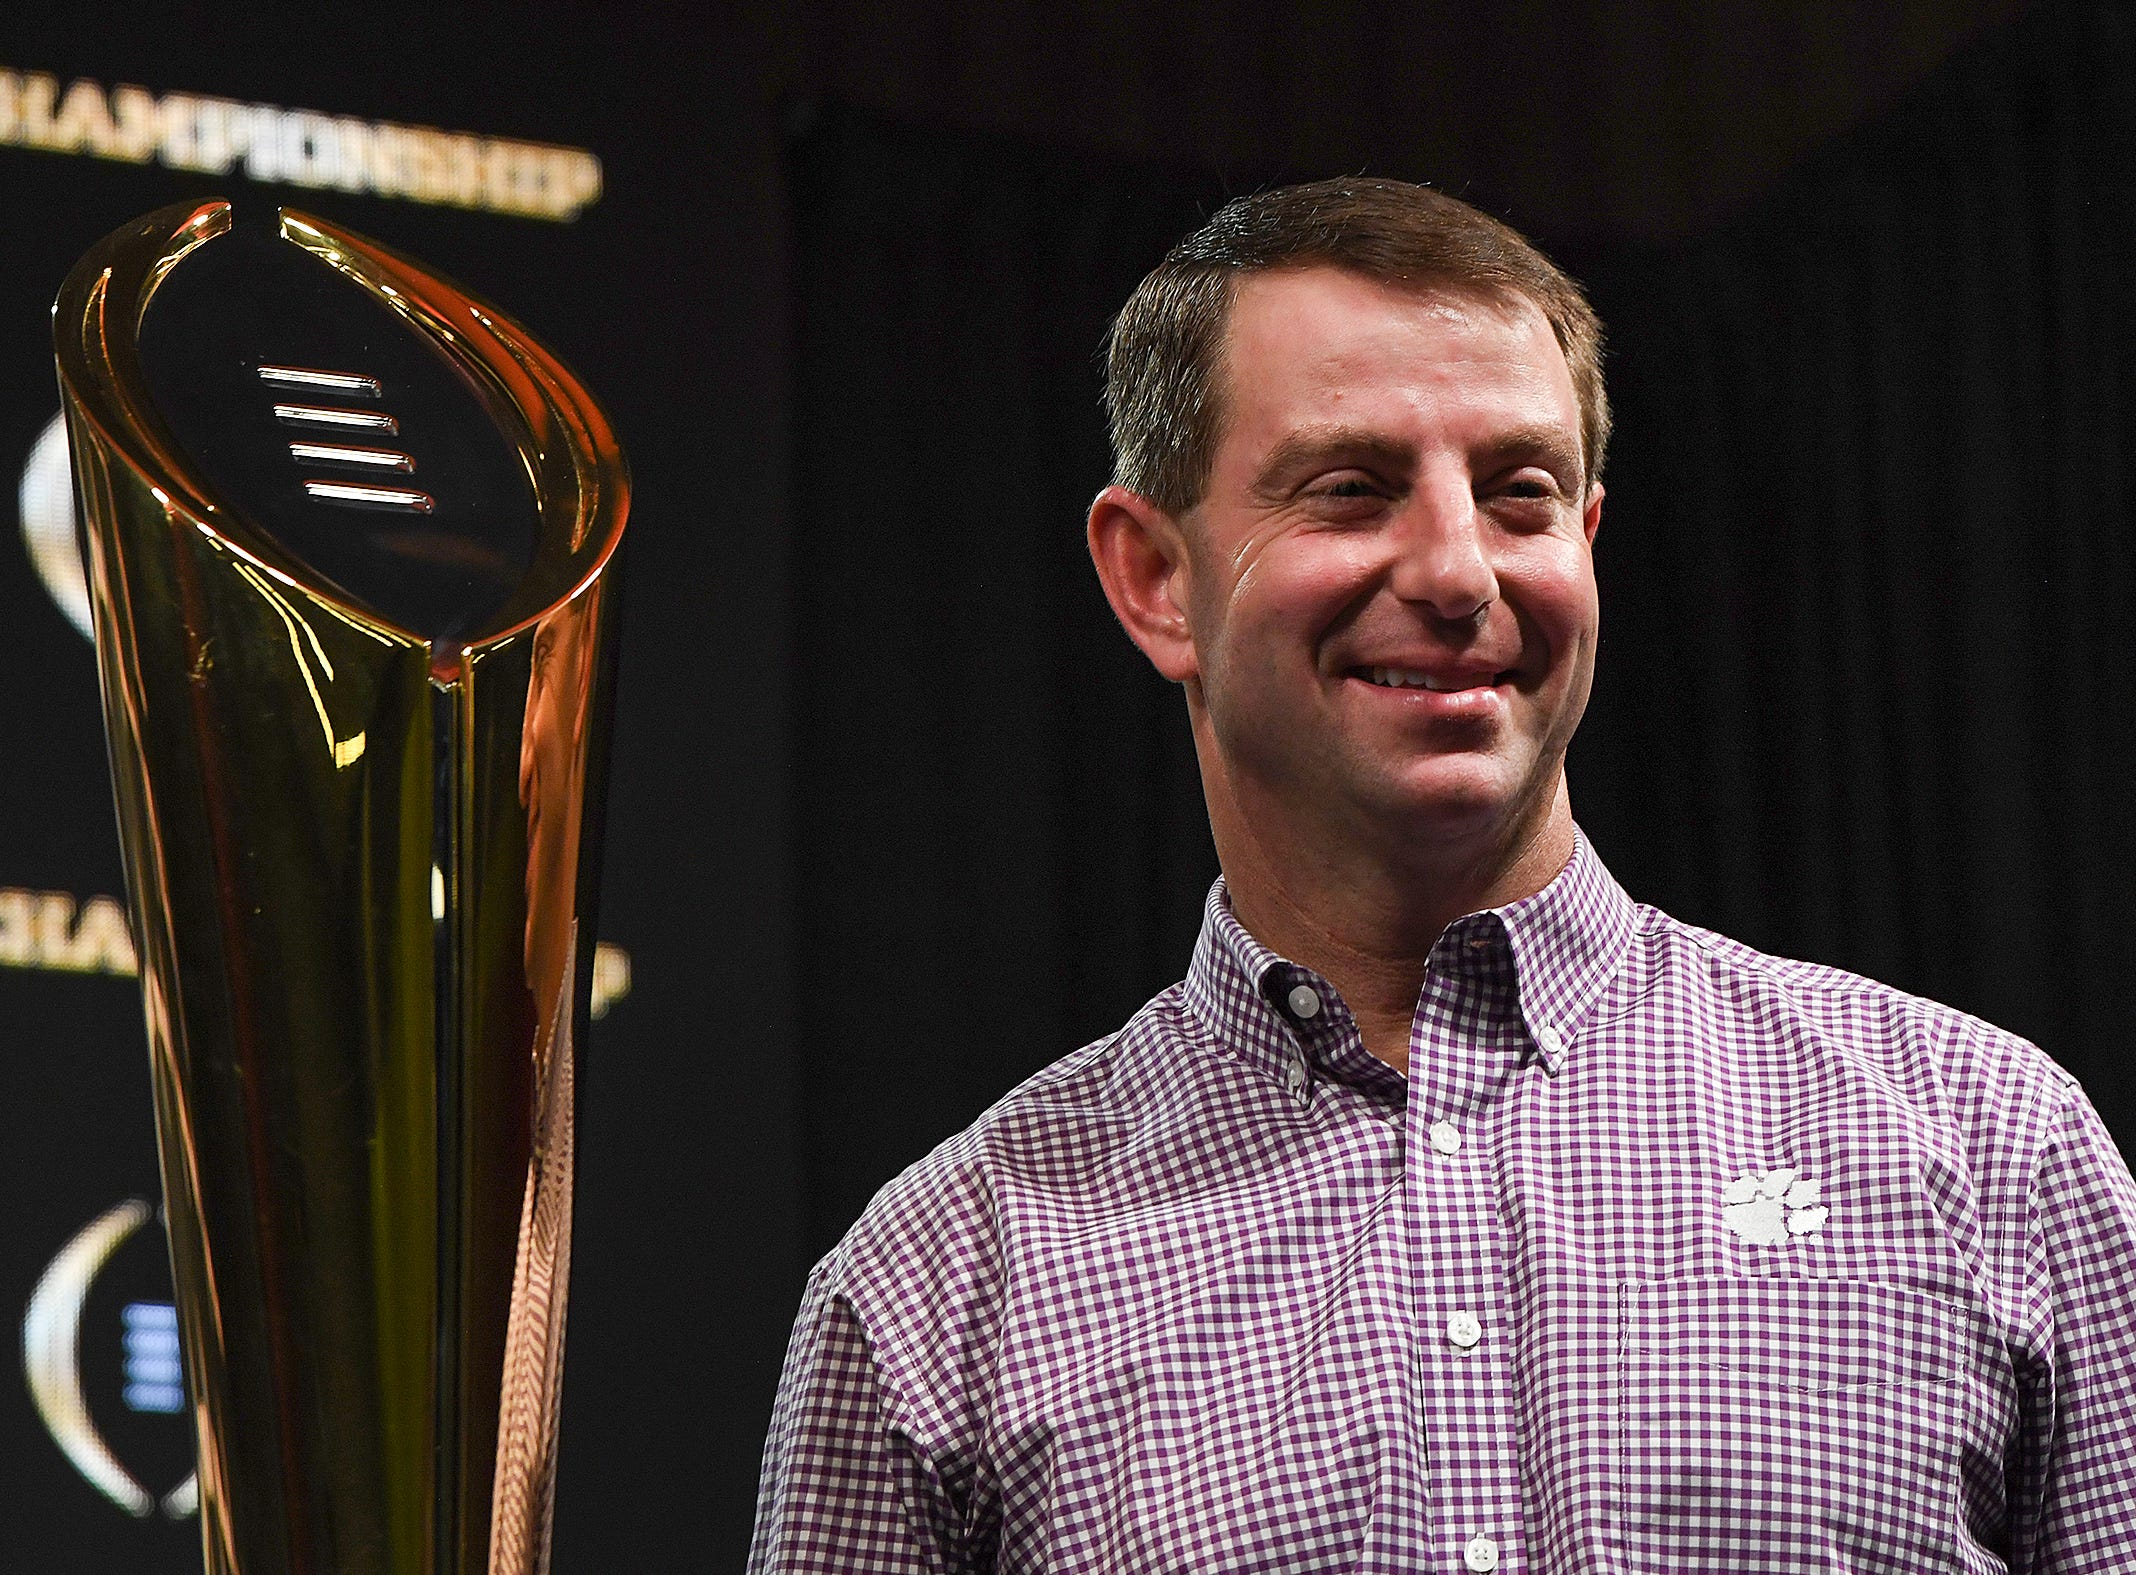 Clemson head coach Dabo Swinney stands with the College Football National Championship trophy during a press conference in San Jose, CA Tuesday, January 8, 2019.